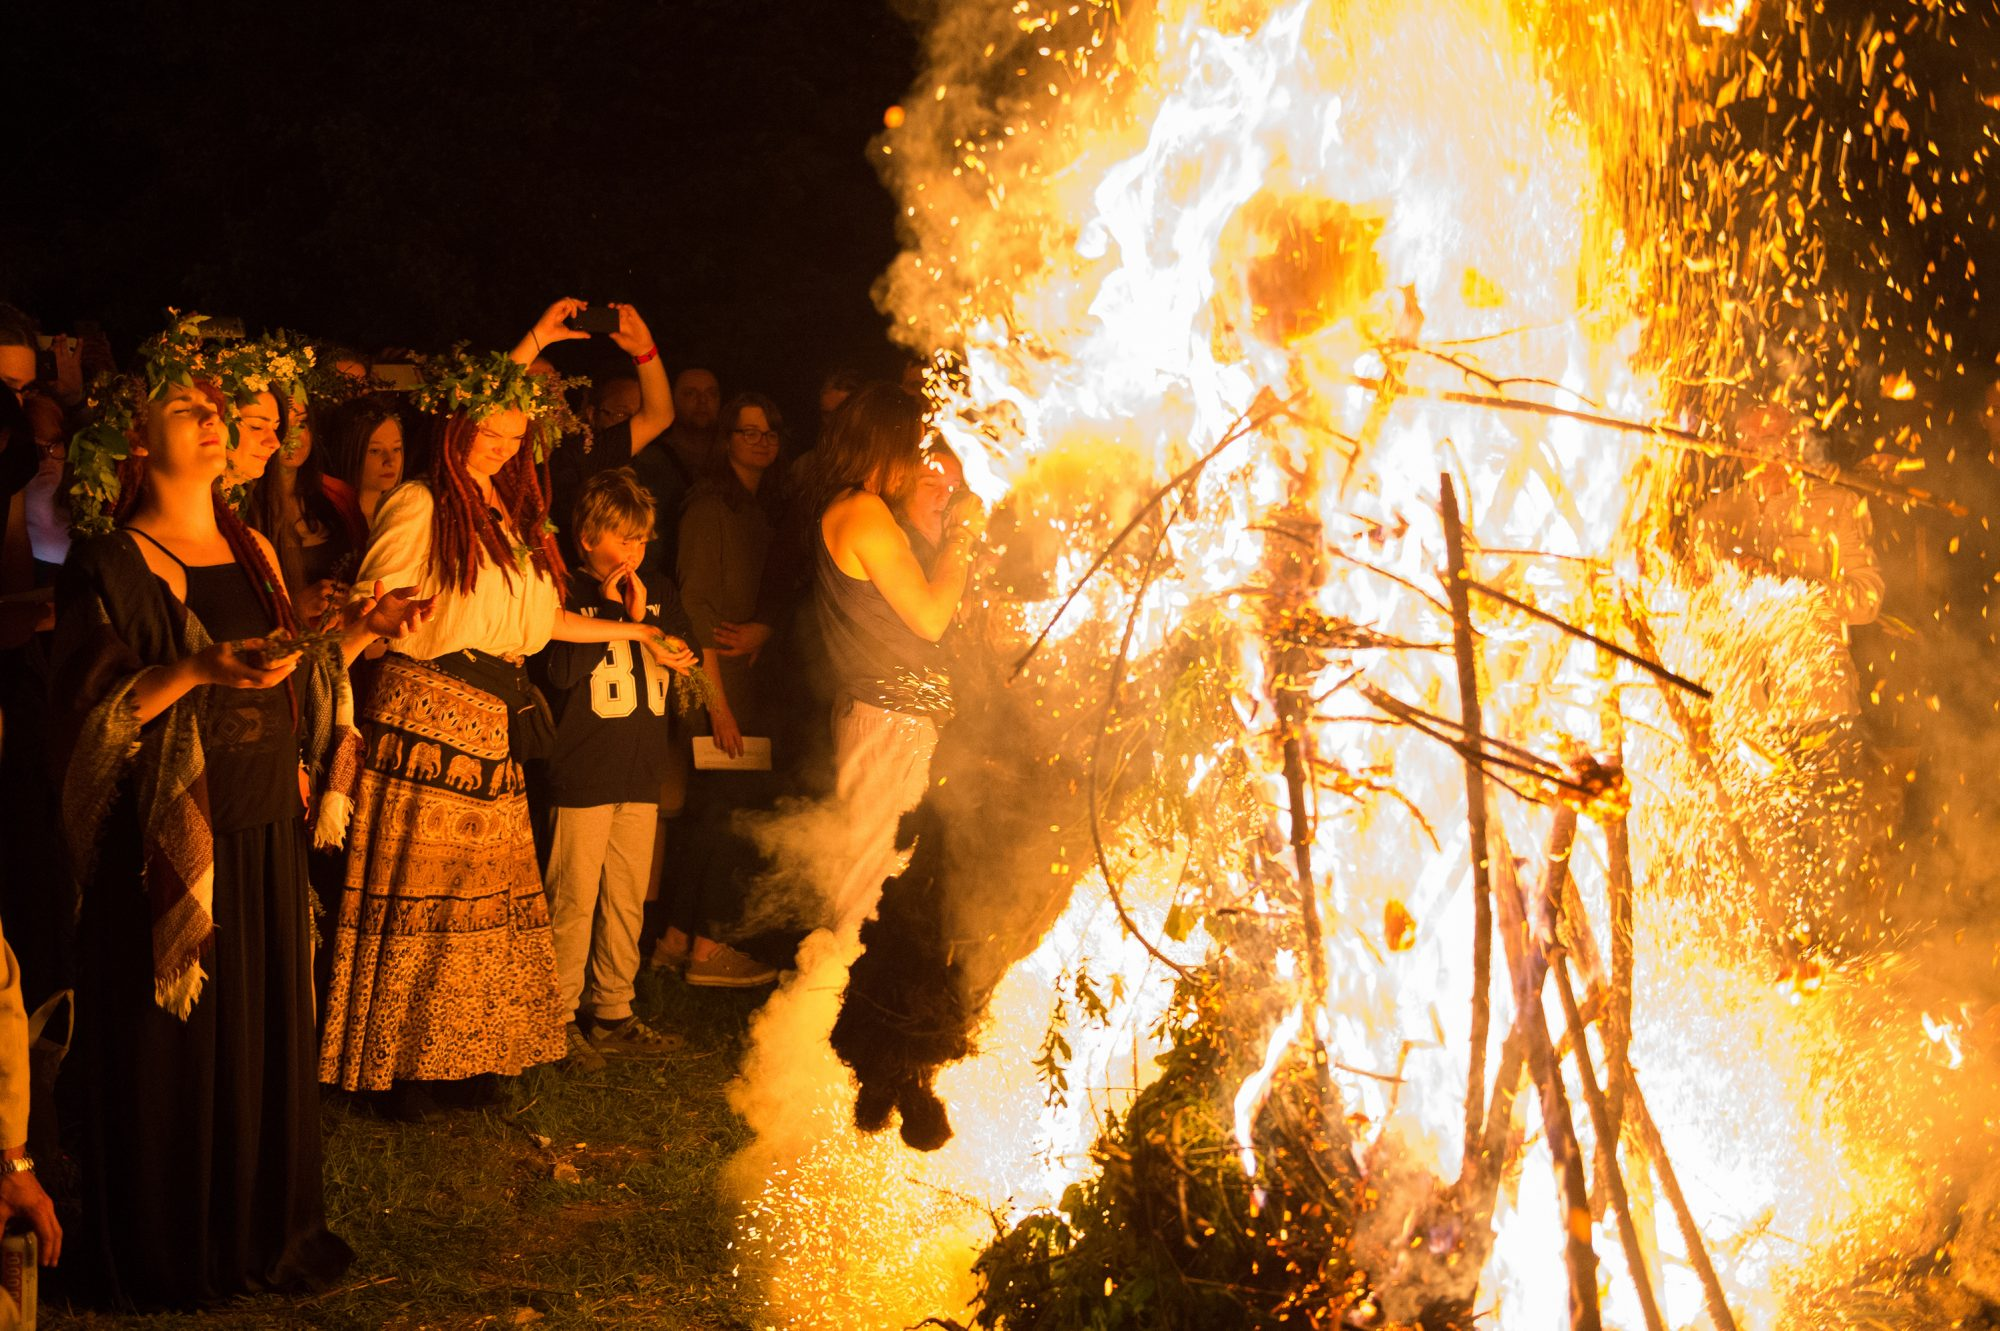 Participants participate in a ritual during the Beltane